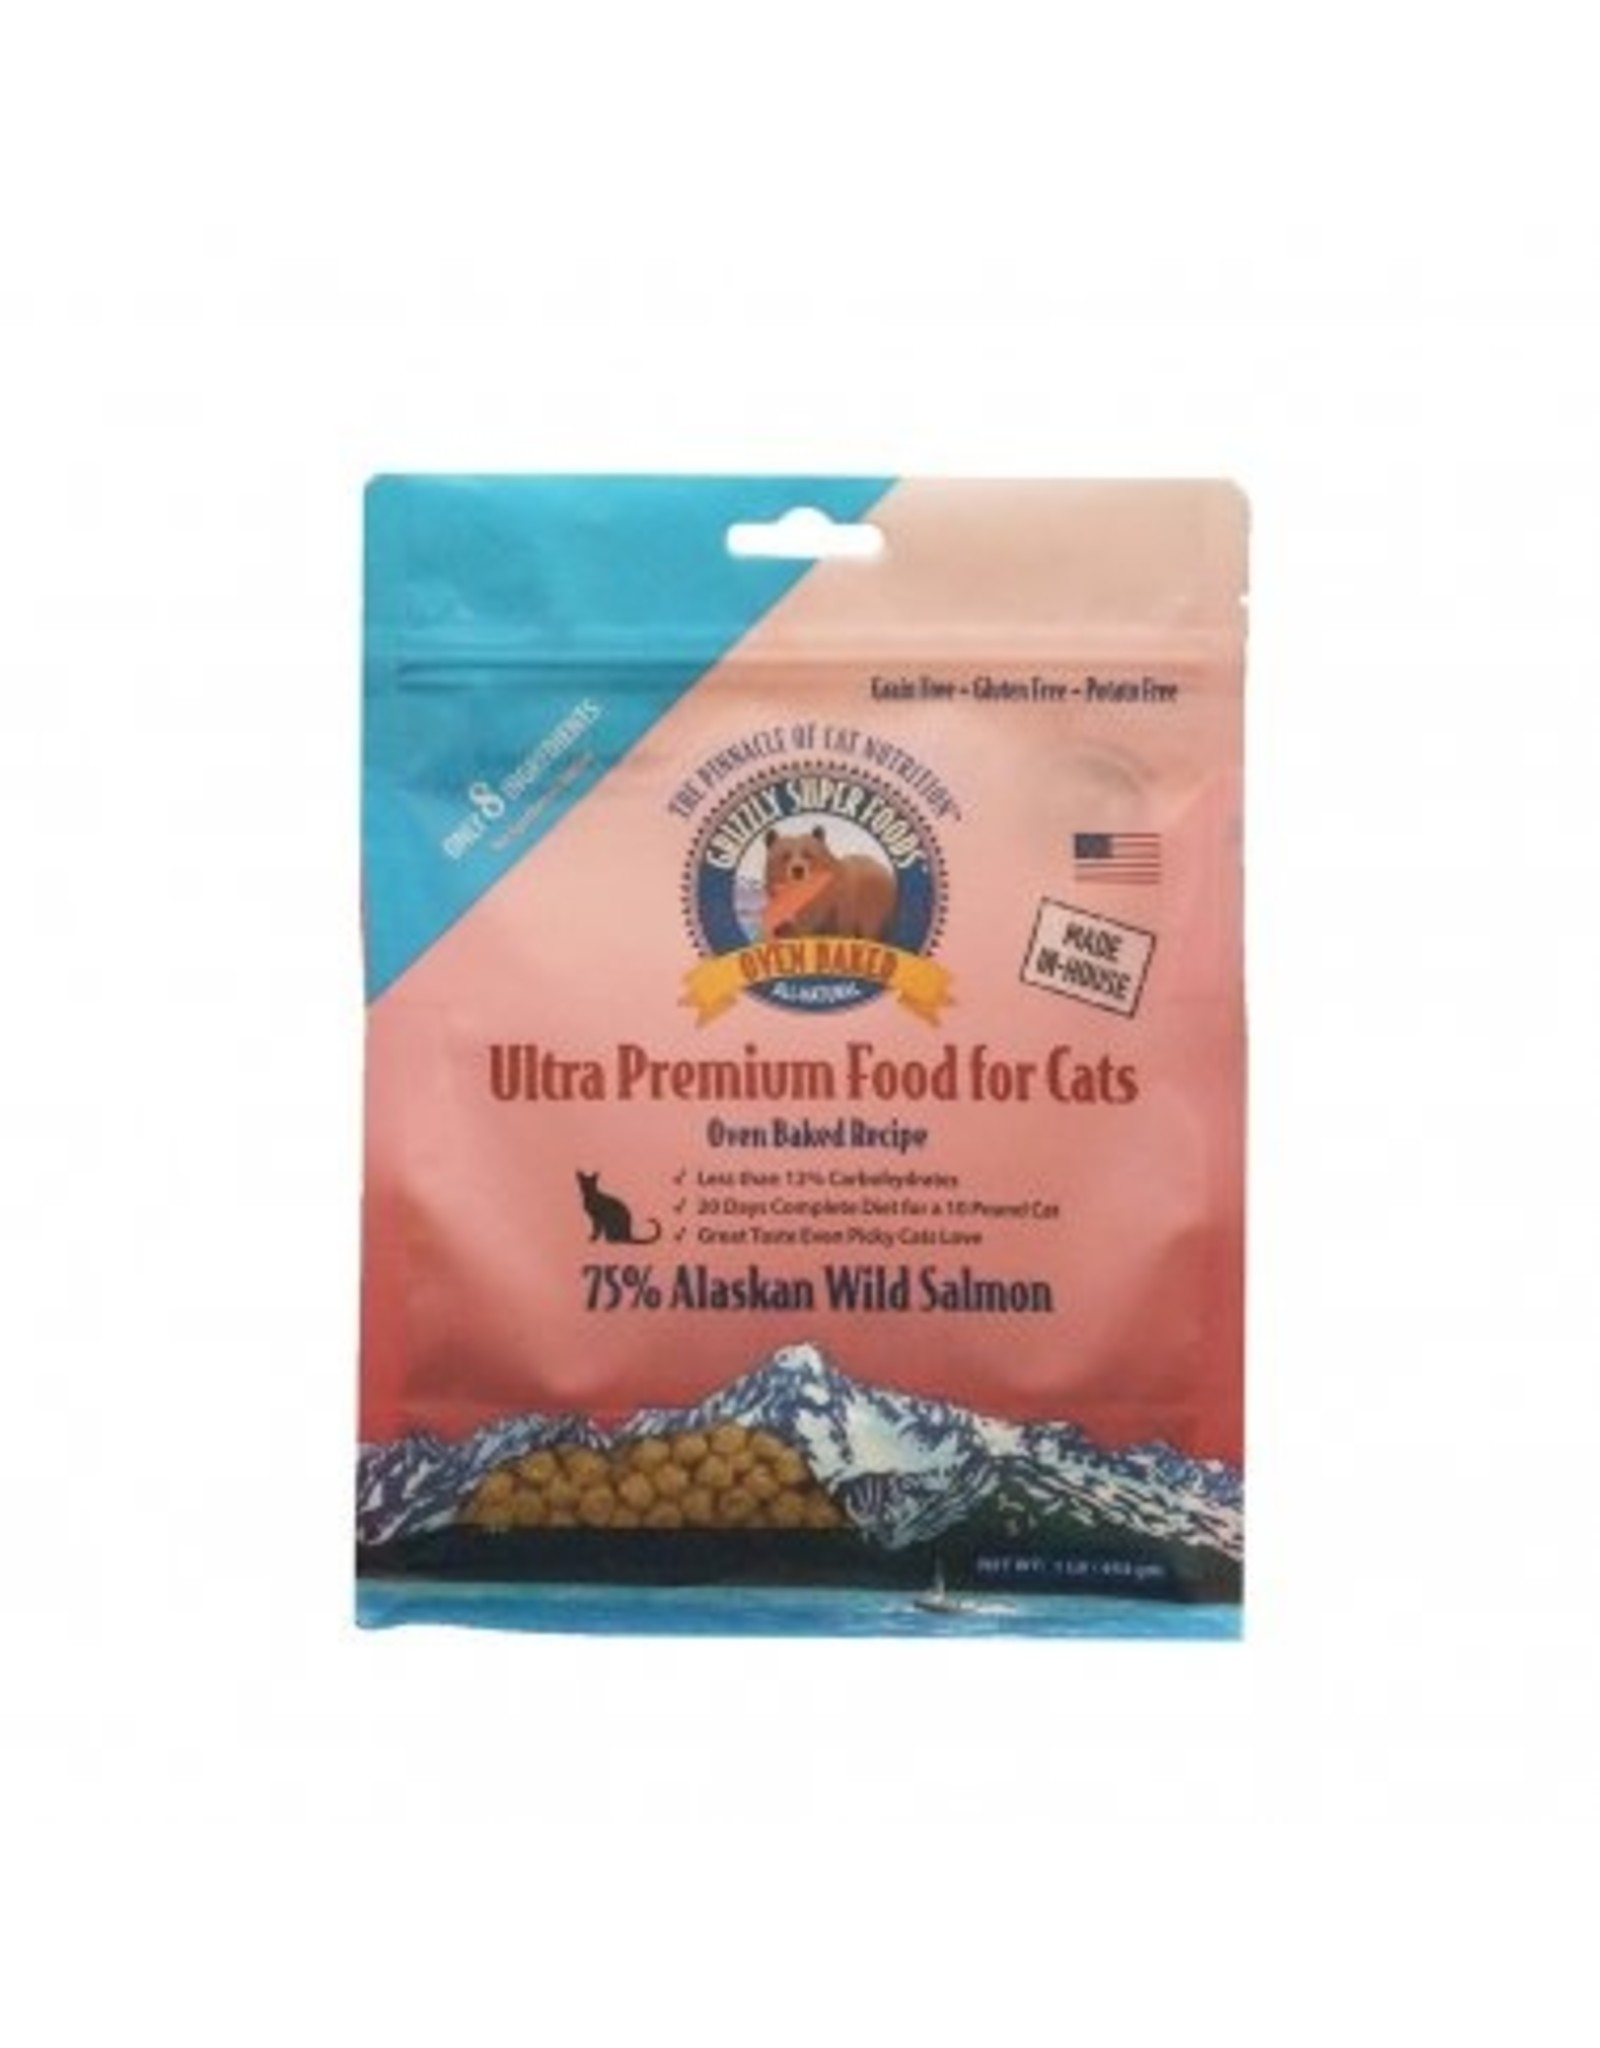 Grizzly Pet Products Grizzly Super Foods Wild Alaska Salmon Oven Baked Recipe Cat Food